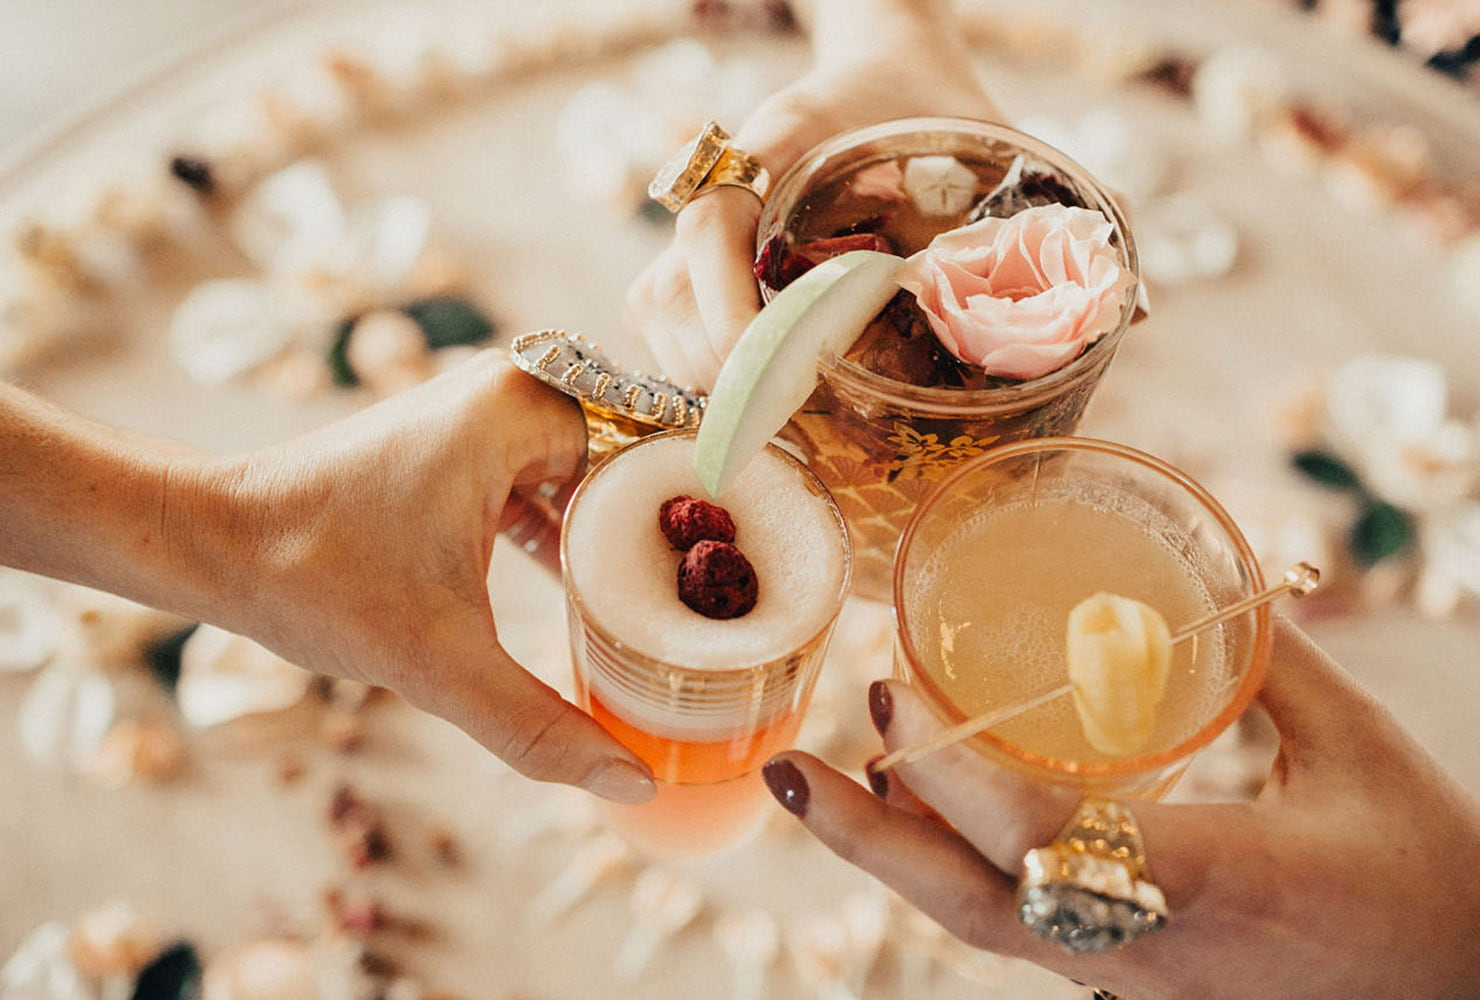 Specialty cocktails with flower and fruit garnishes